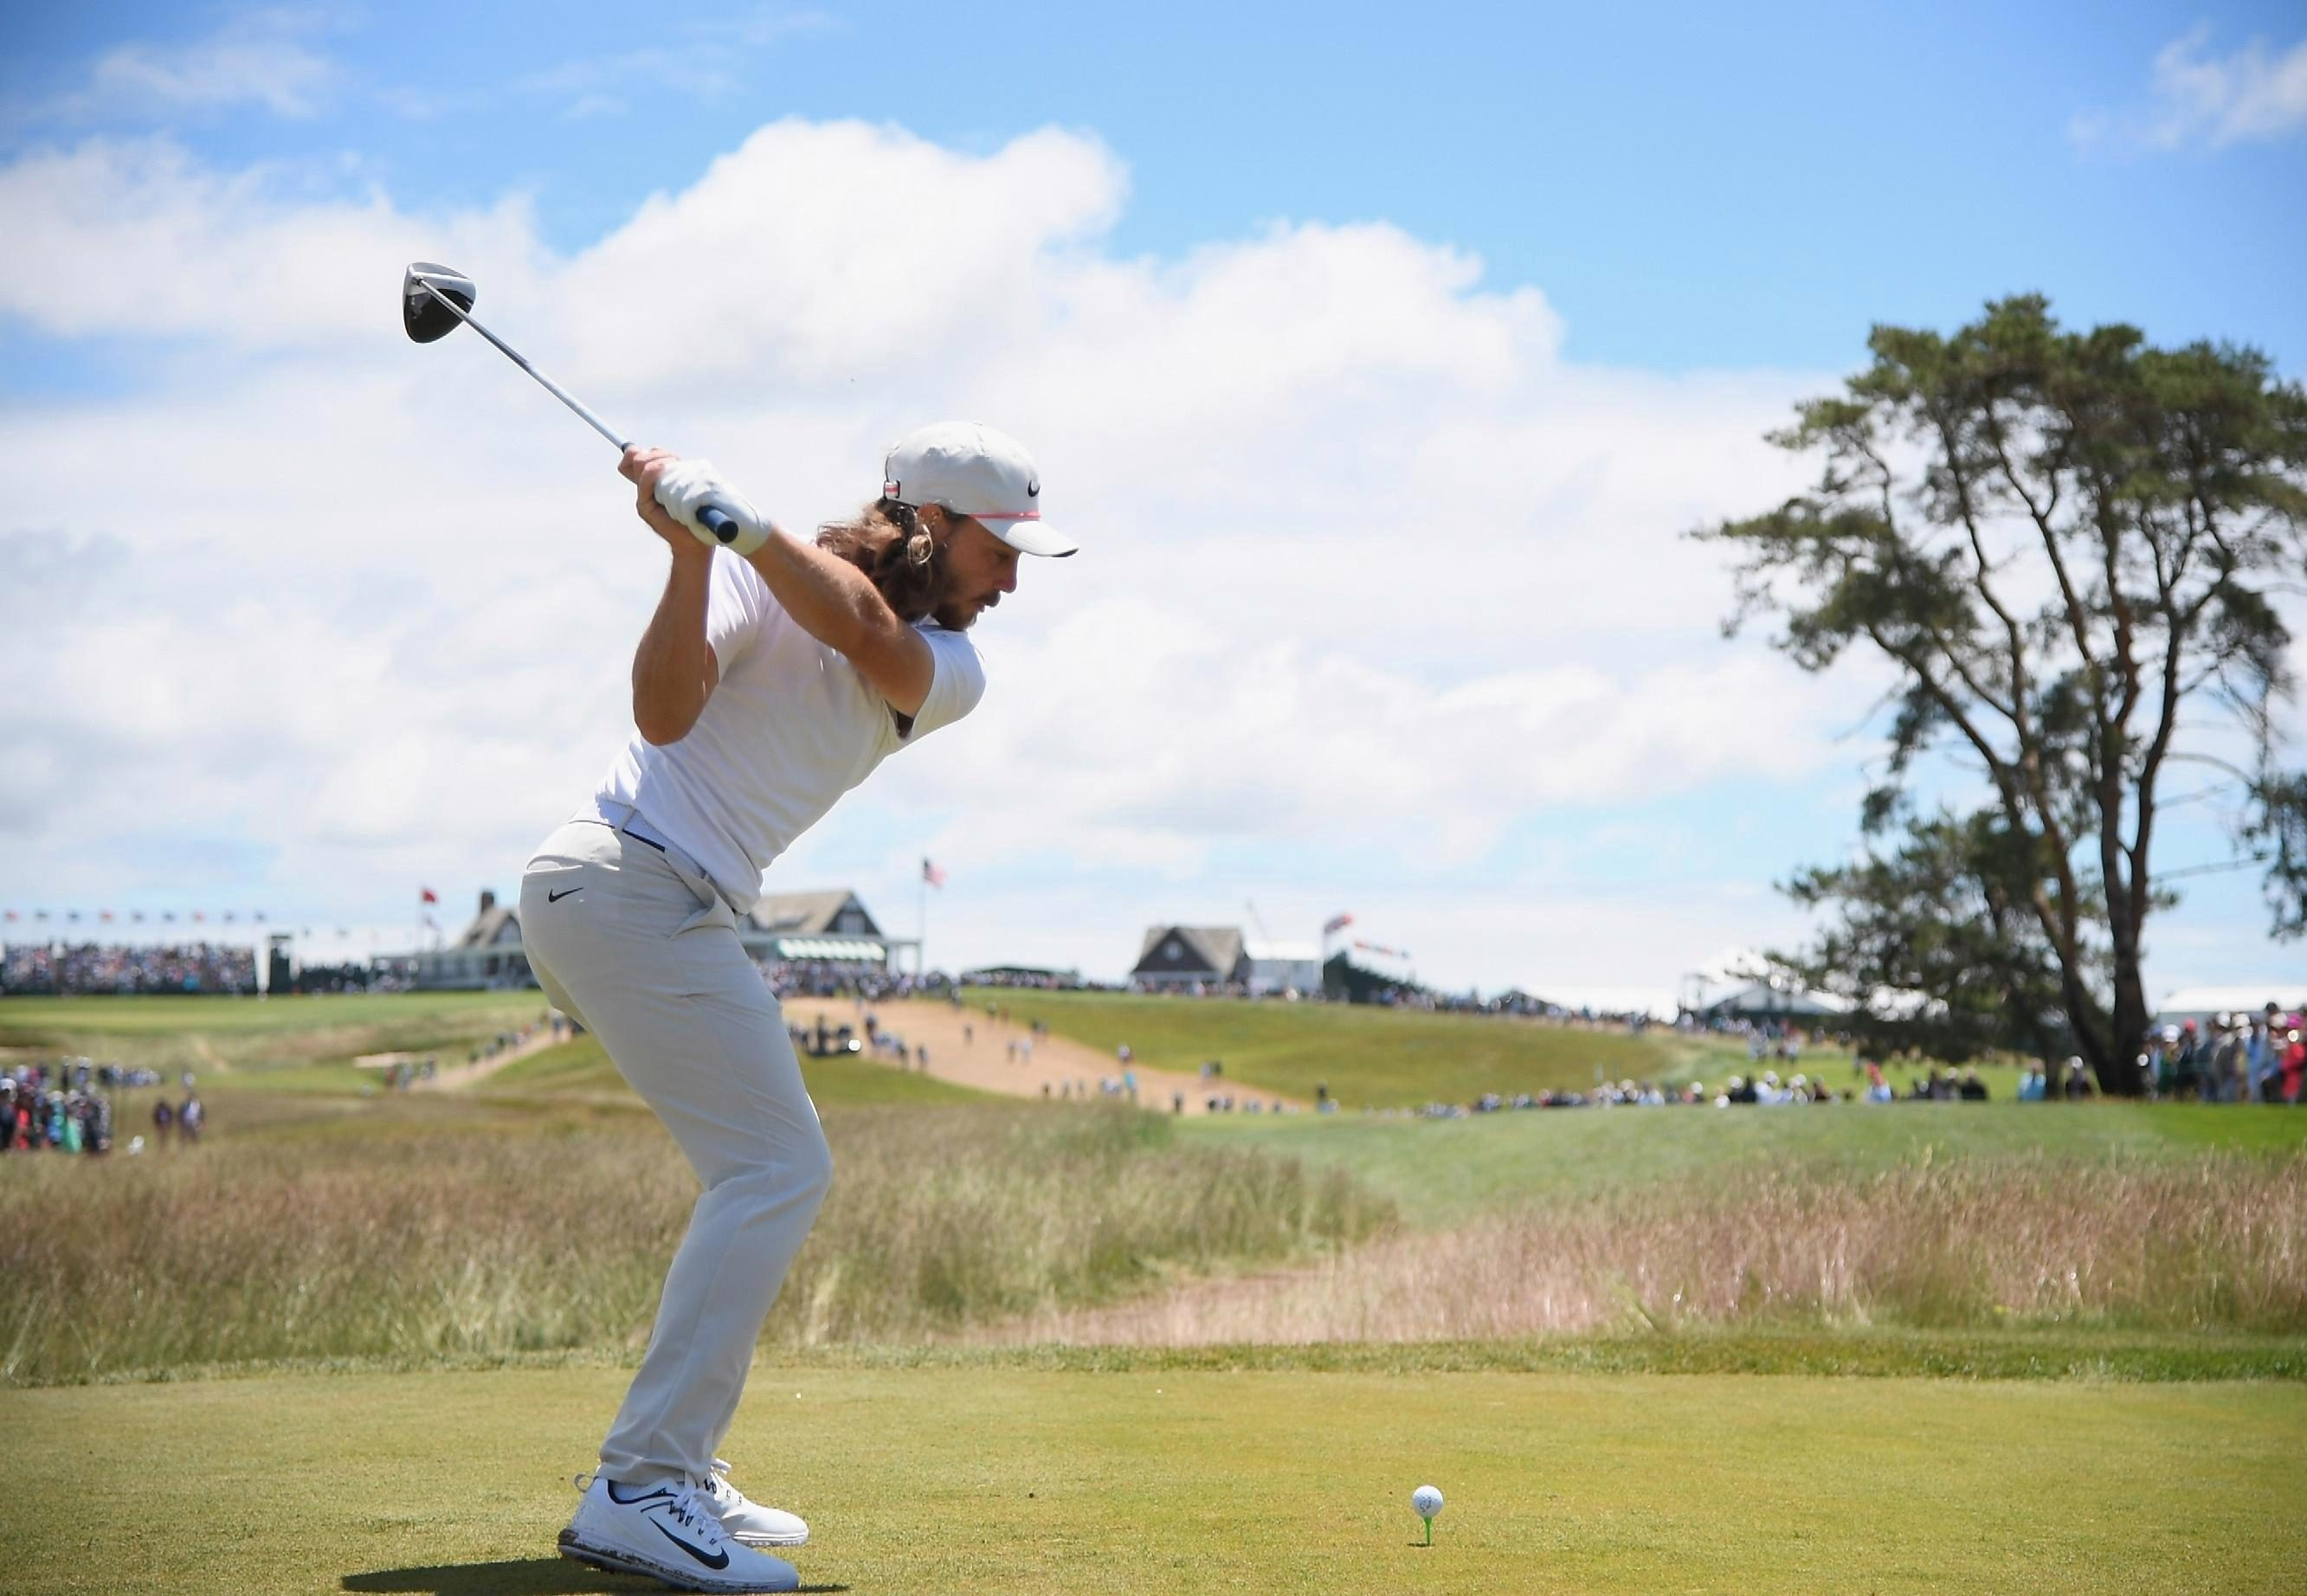 Tommy Fleetwood played a superb -4 on the day to put himself at +1 overall